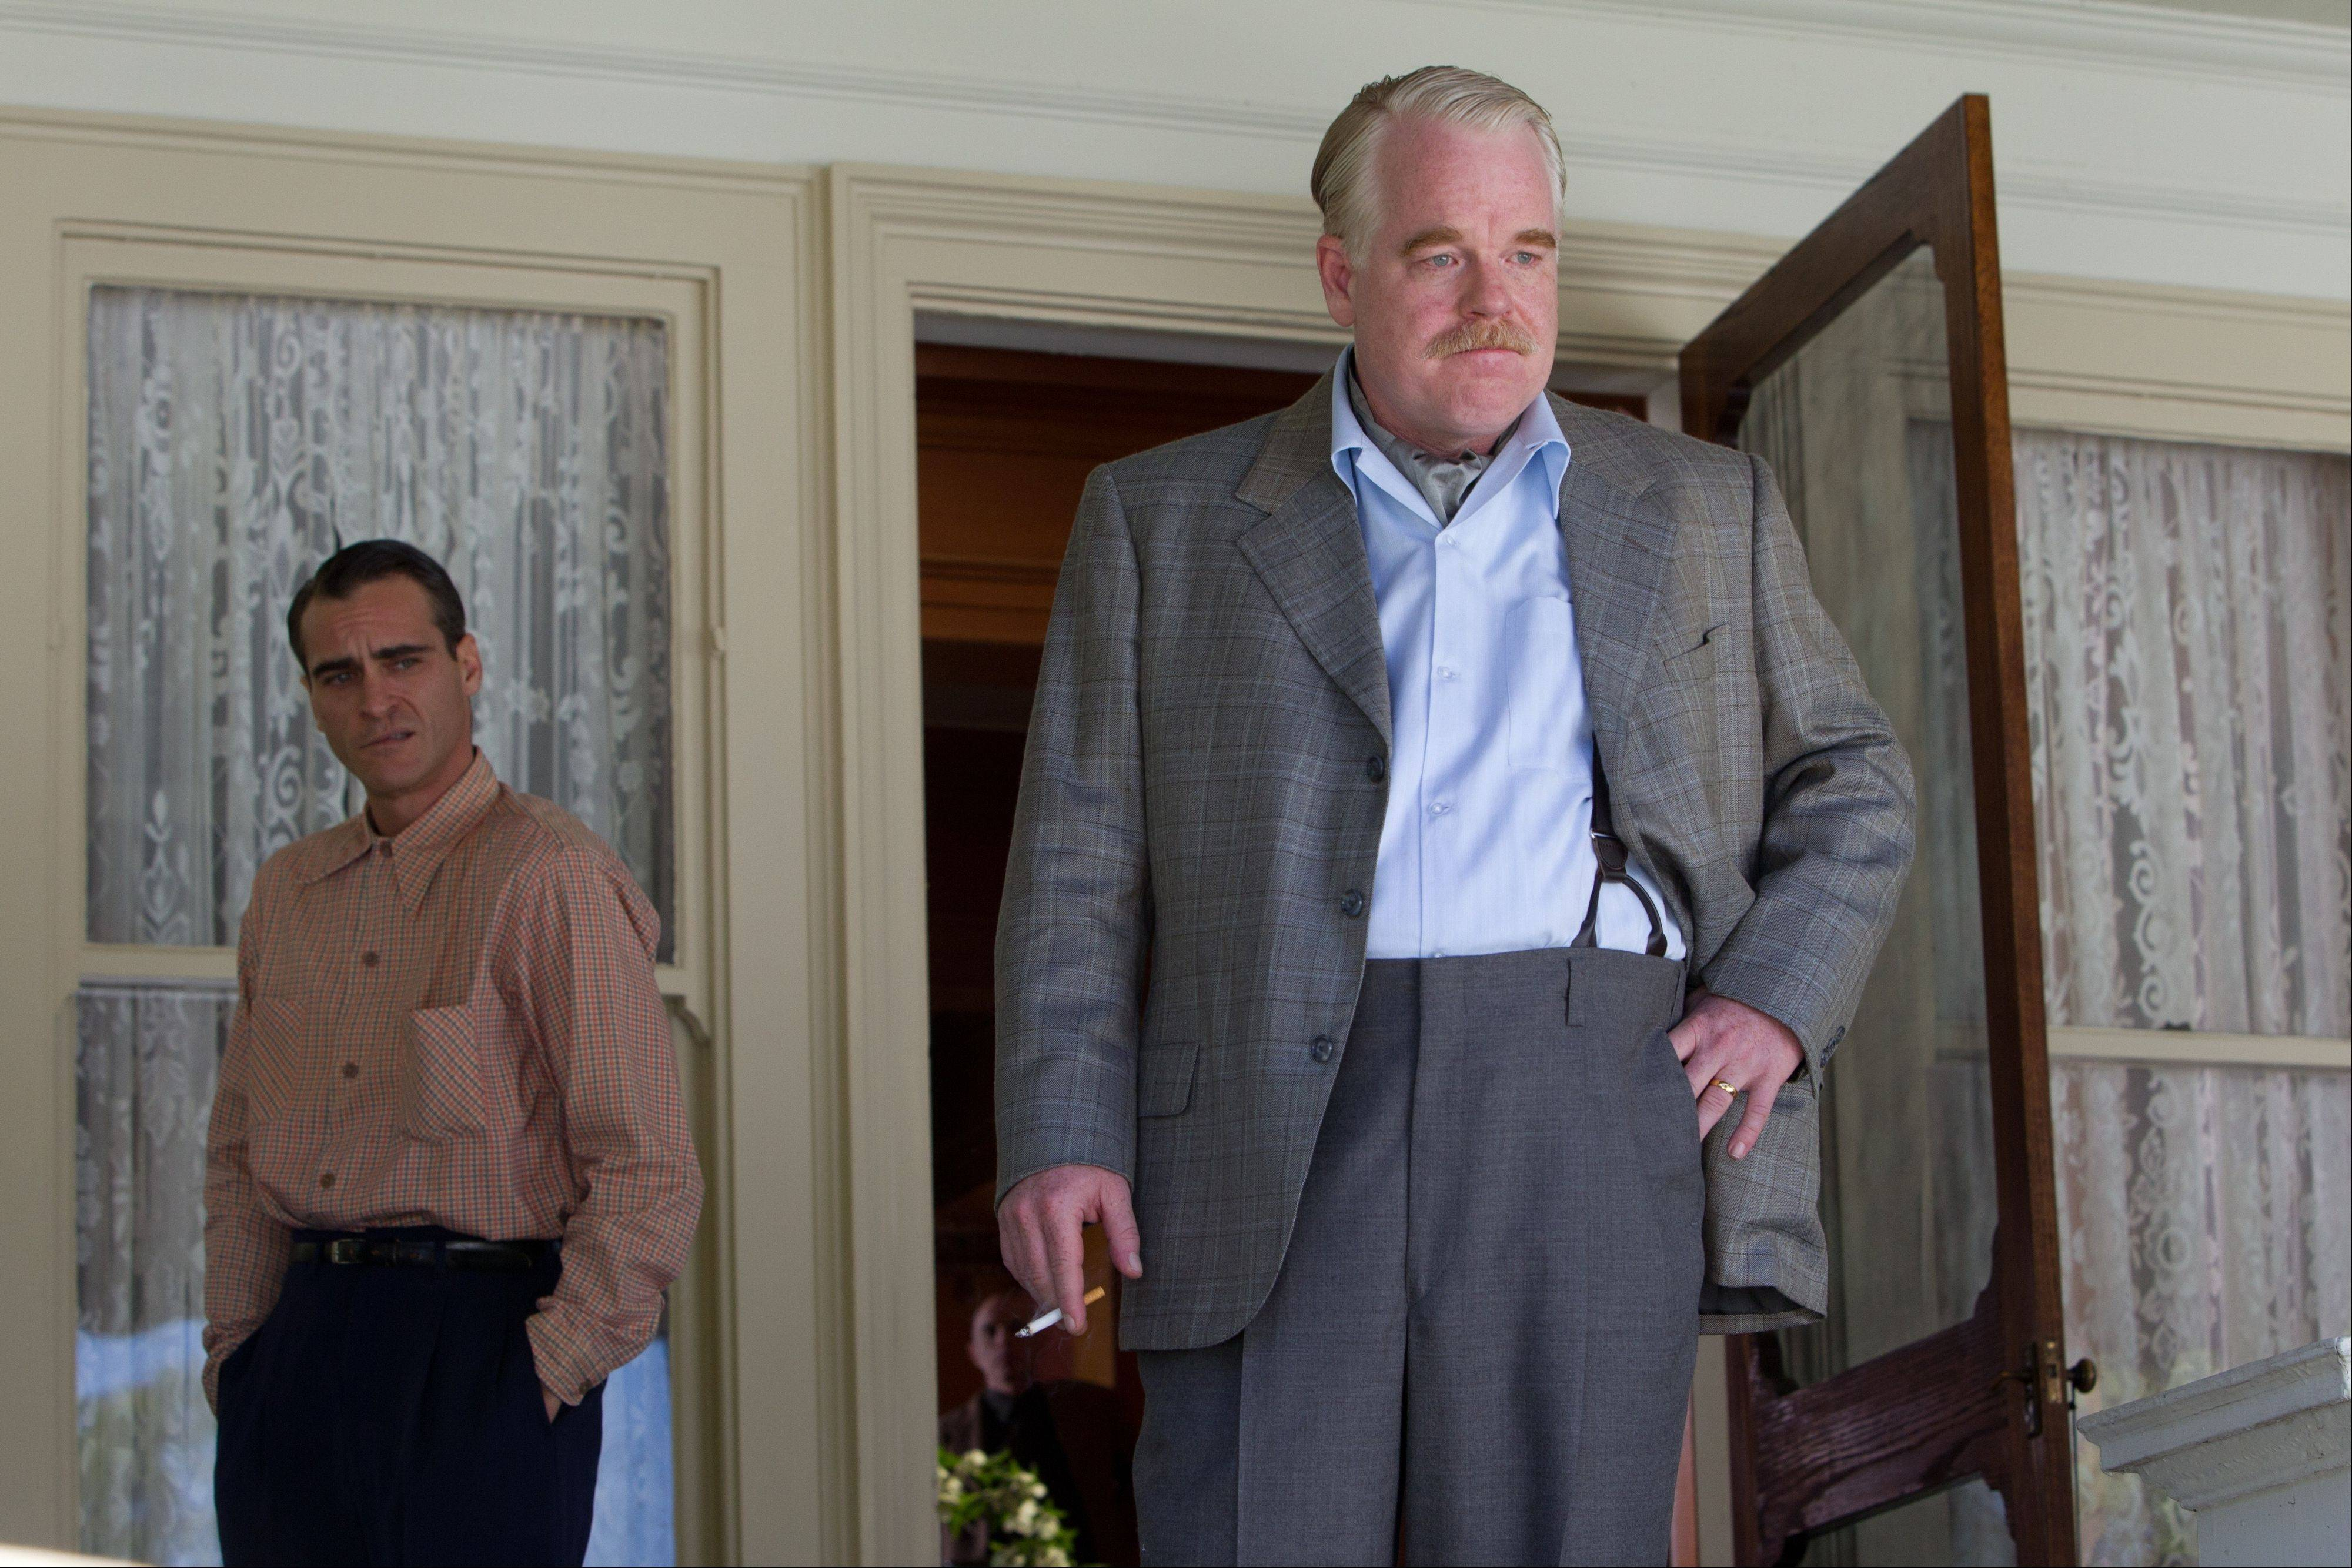 "This film image released by The Weinstein Co. shows Joaquin Phoenix, left, and Philip Seymour Hoffman in a scene from ""The Master."" The film, which was released in only five theaters made an average of $145,949 per screen, follows Hoffman who plays a charistmatic cult leader and Phoenix his protege and is loosely based on L. Ron Hubbard and Scientology."